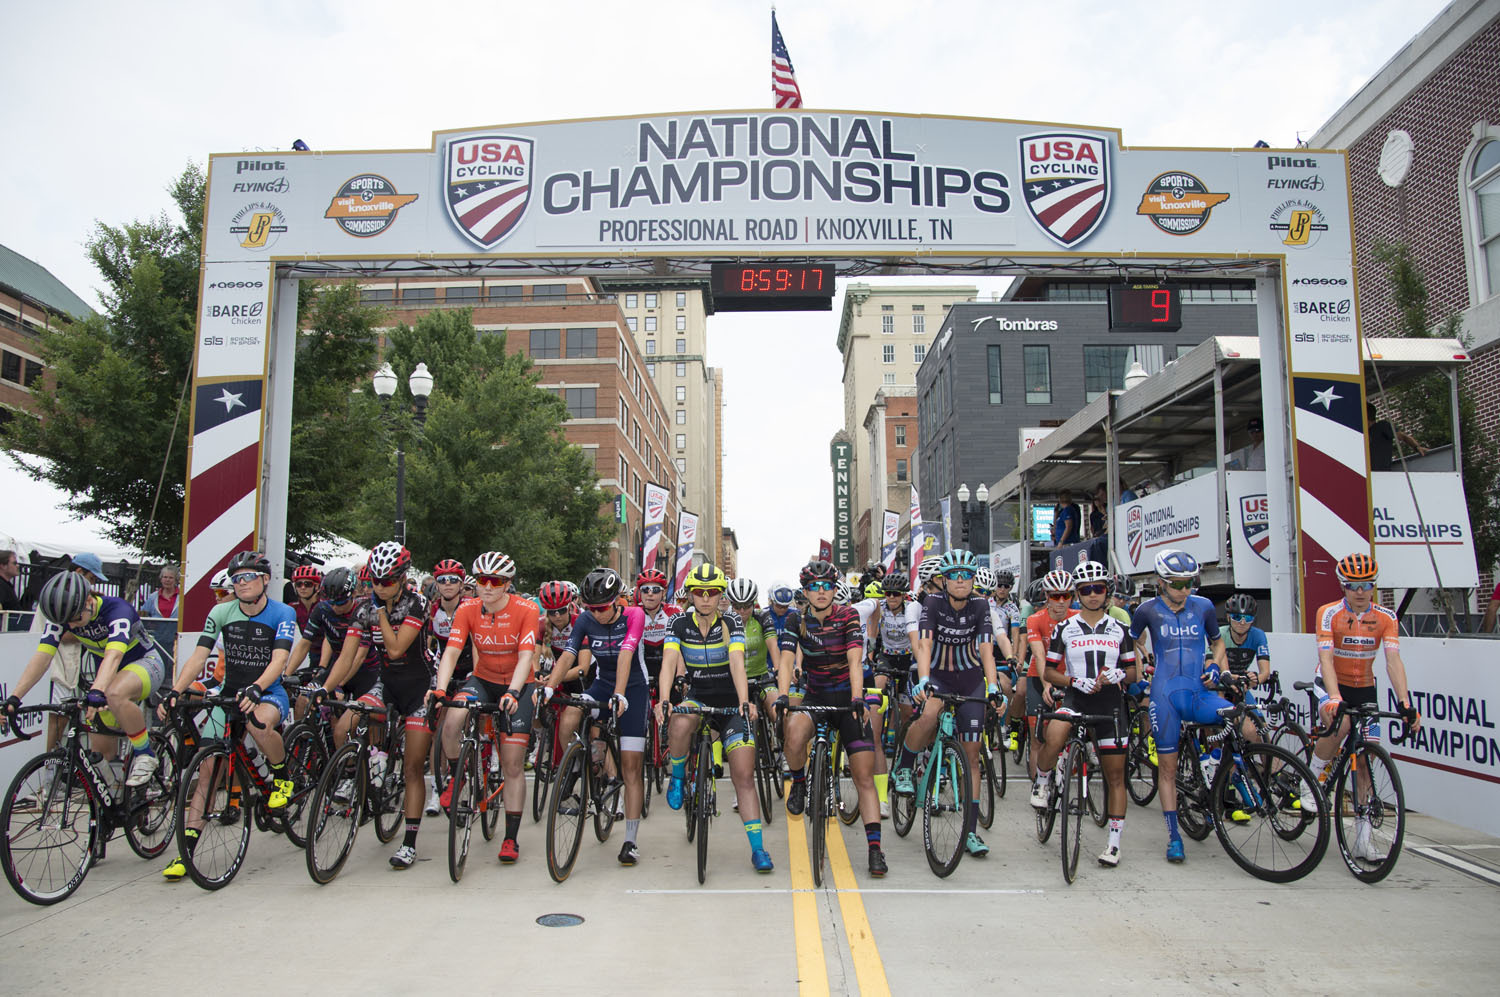 USA Cycling announces 2019 National Championships | USA Cycling